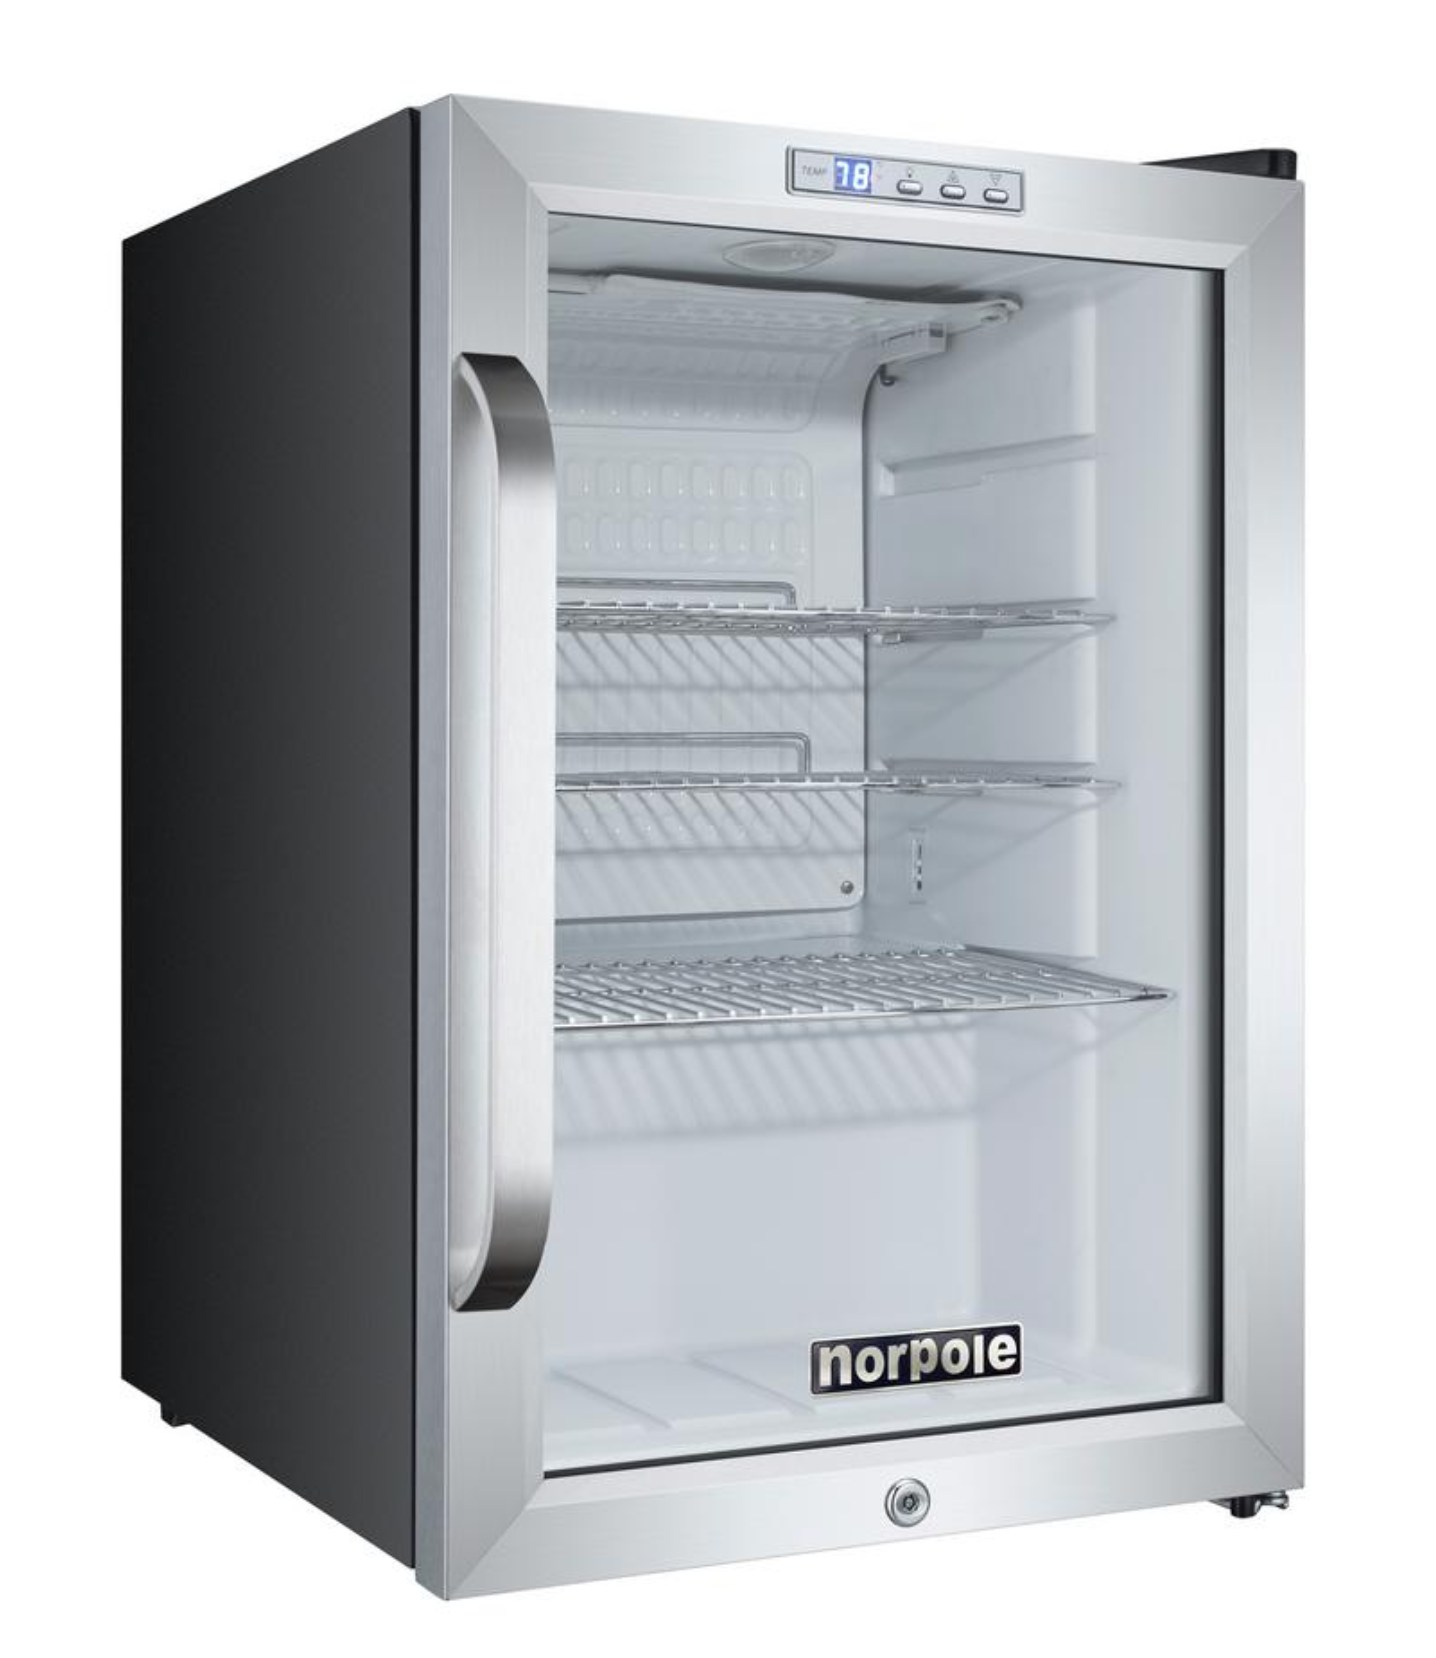 Norpole Mini fridge, Rm wraps